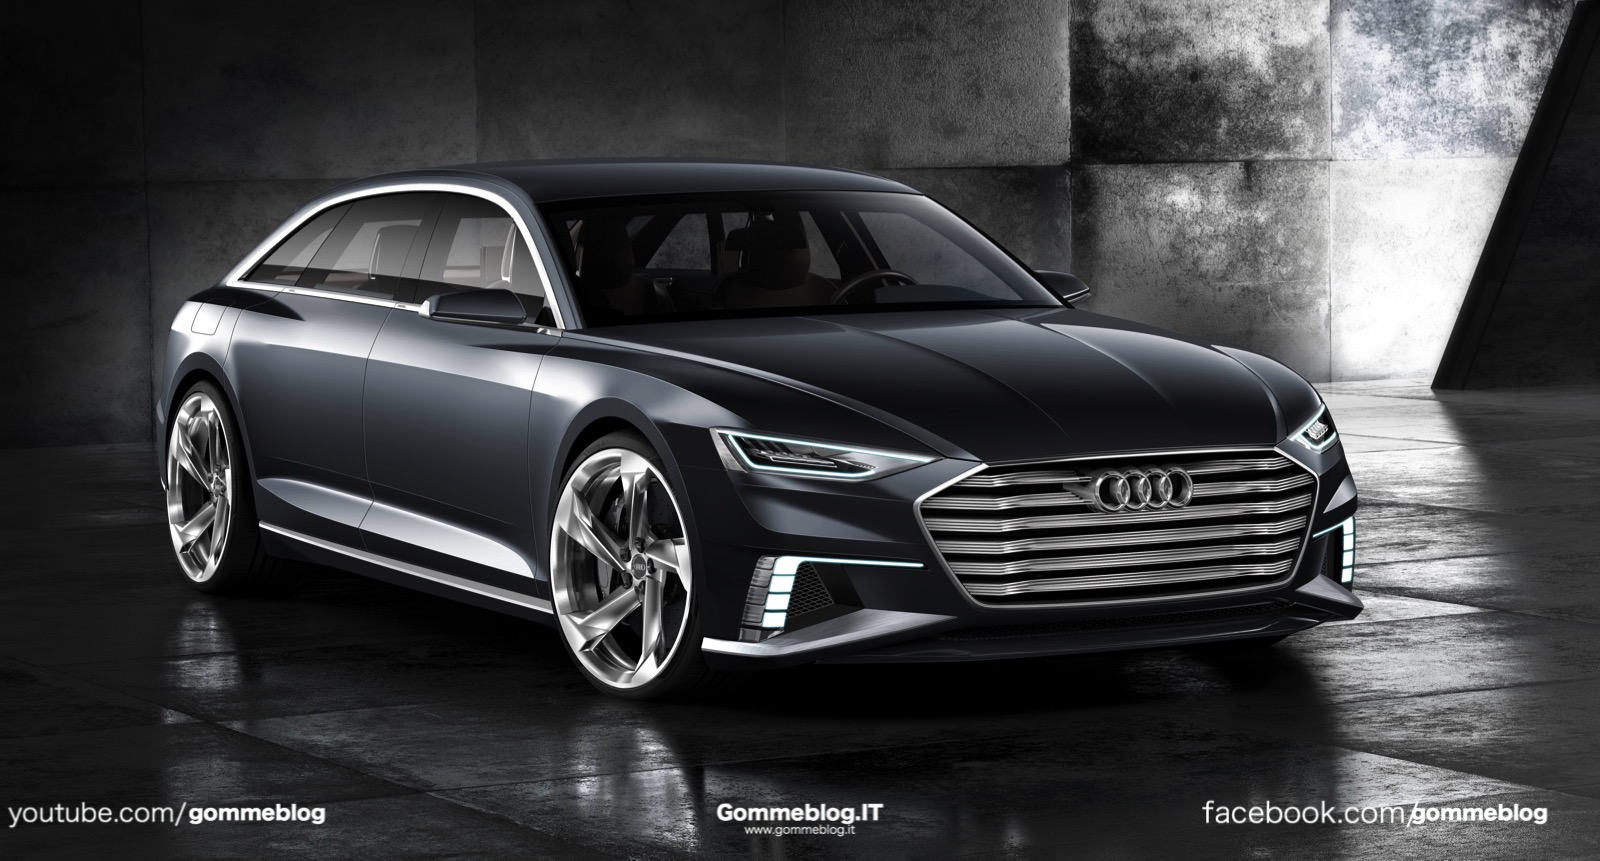 Audi Prologue: una nuova era del design 4